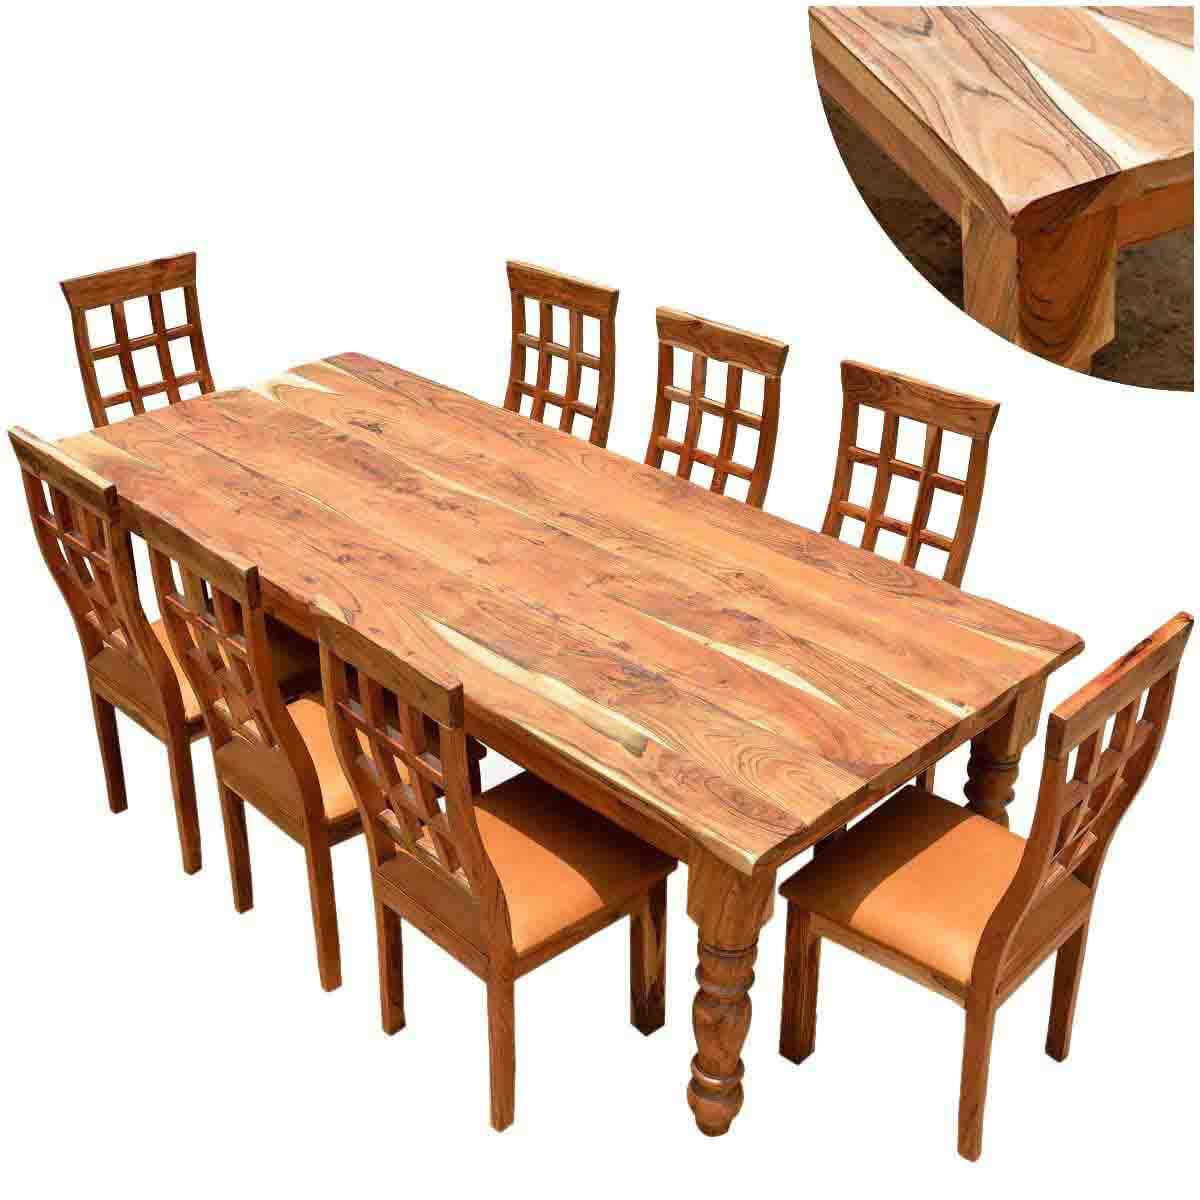 Rustic Wooden Dining Room Table ~ Download rustic wood dining room table gen congress with